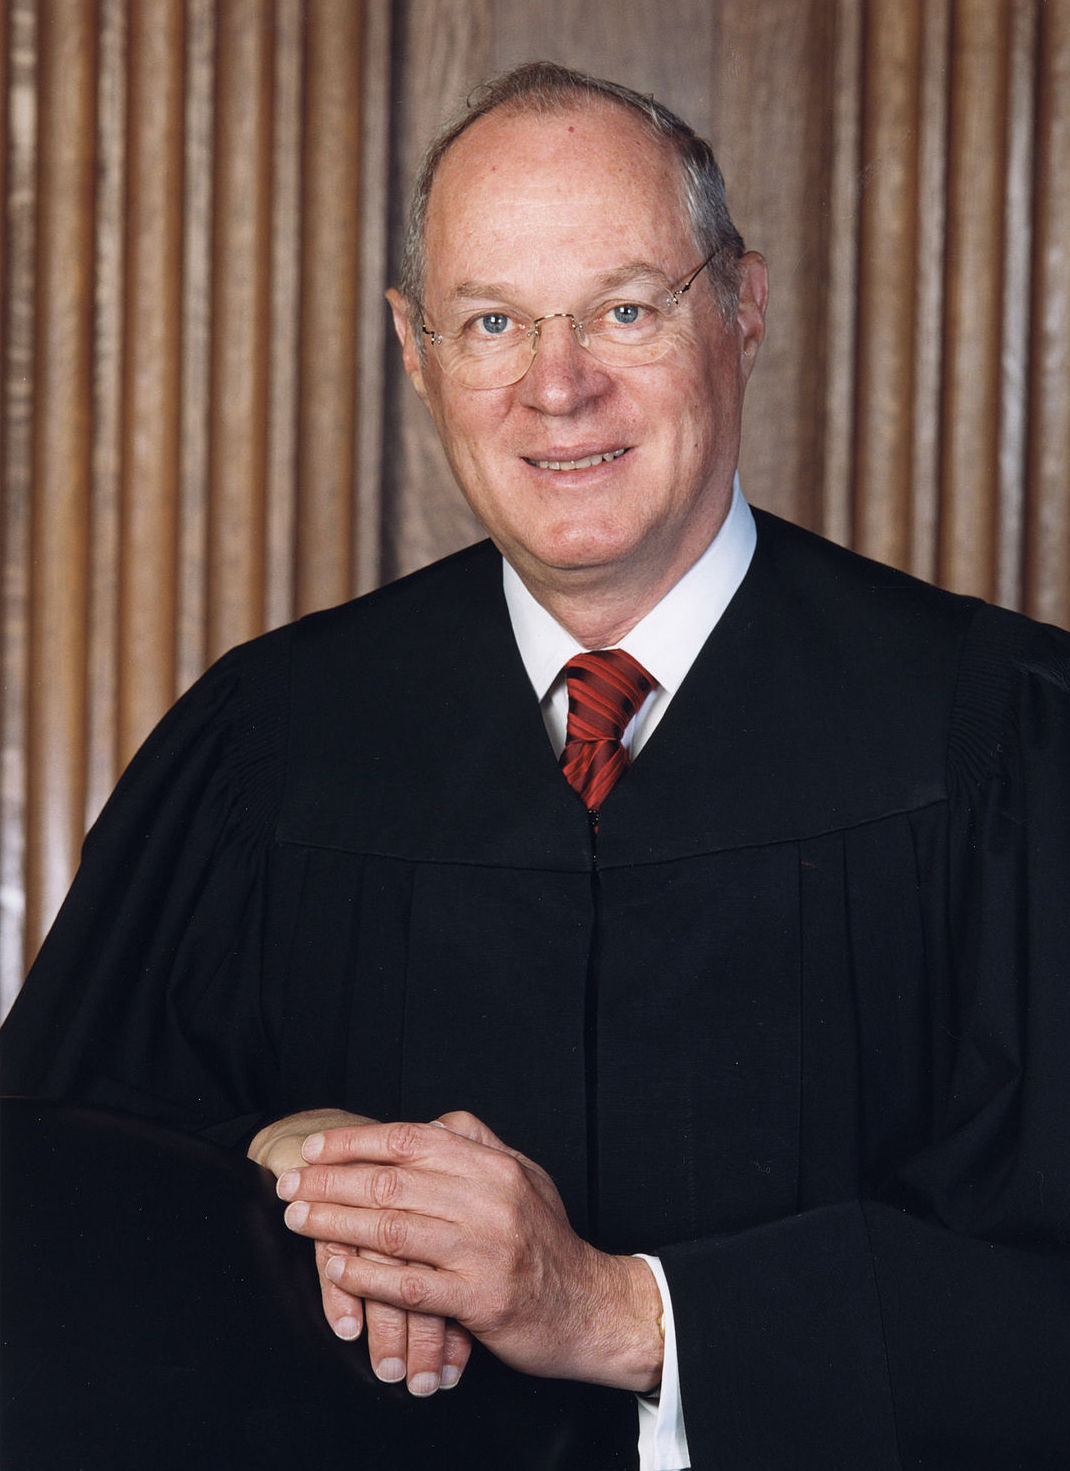 Justice Anthony Kennedy, author of the controlling opinion of the United States Supreme Court in the case of Obergefell v. Hodges